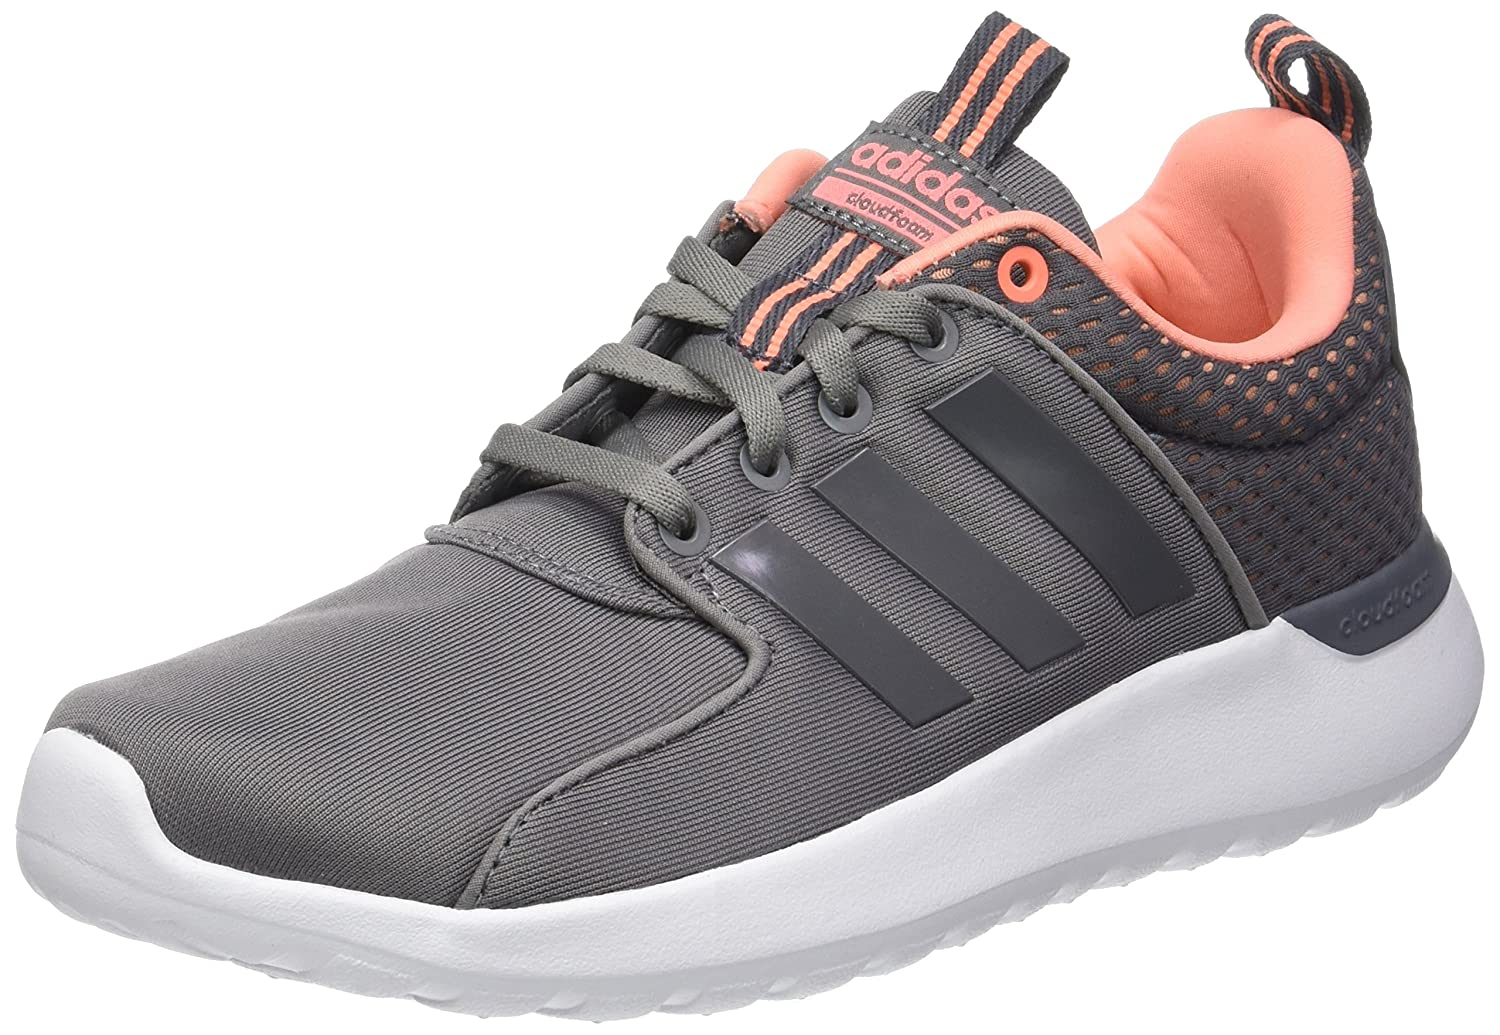 Adidas Damen CF Lite Racer Turnschuhe 42 EU Grau (grau Three grau Three ... Moderater Preis